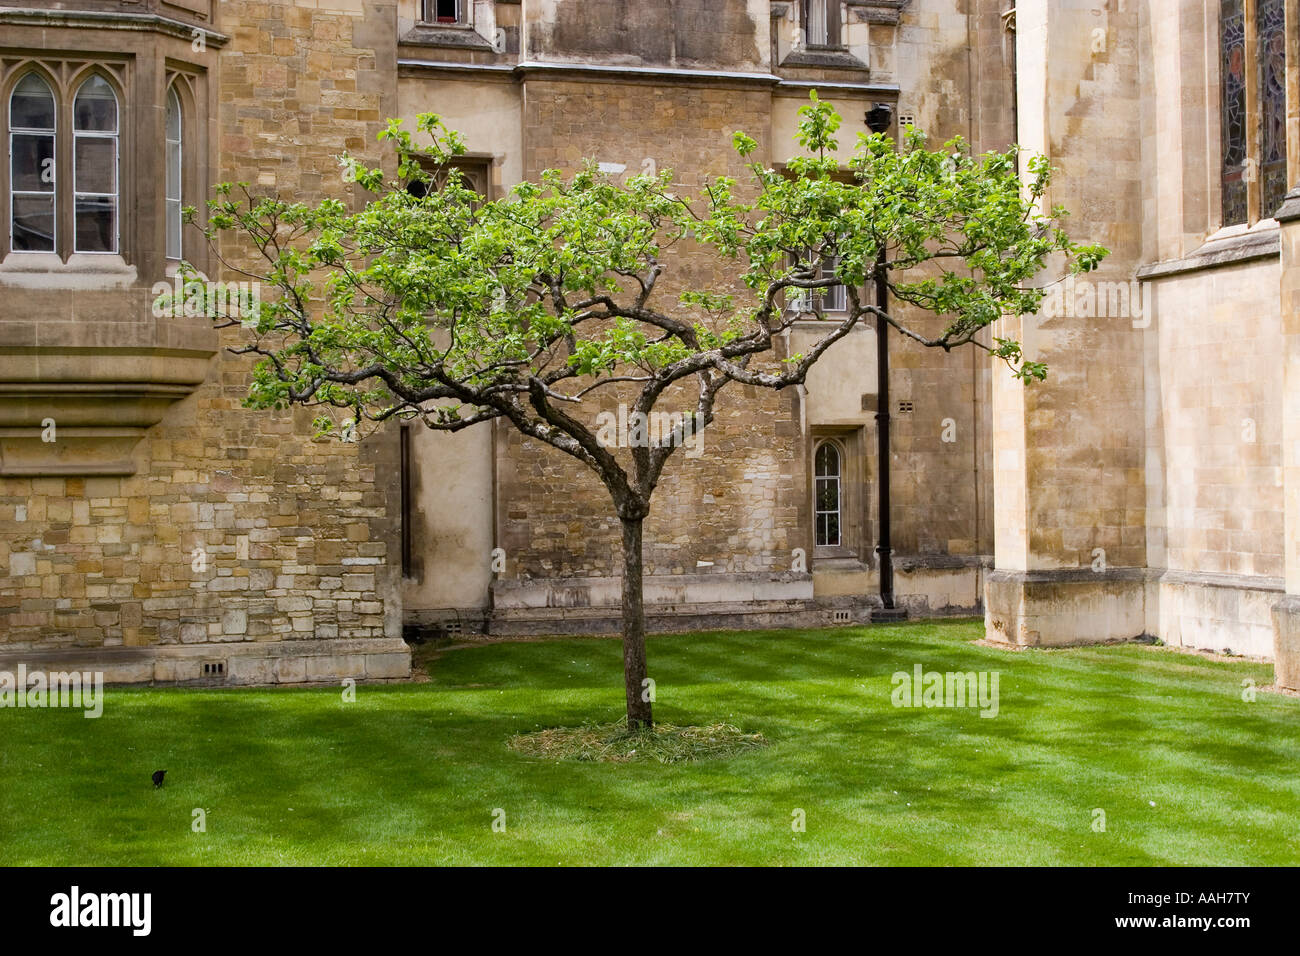 these images will help you understand the words isaac newton apple in detail all images found in the global network and can be used only with